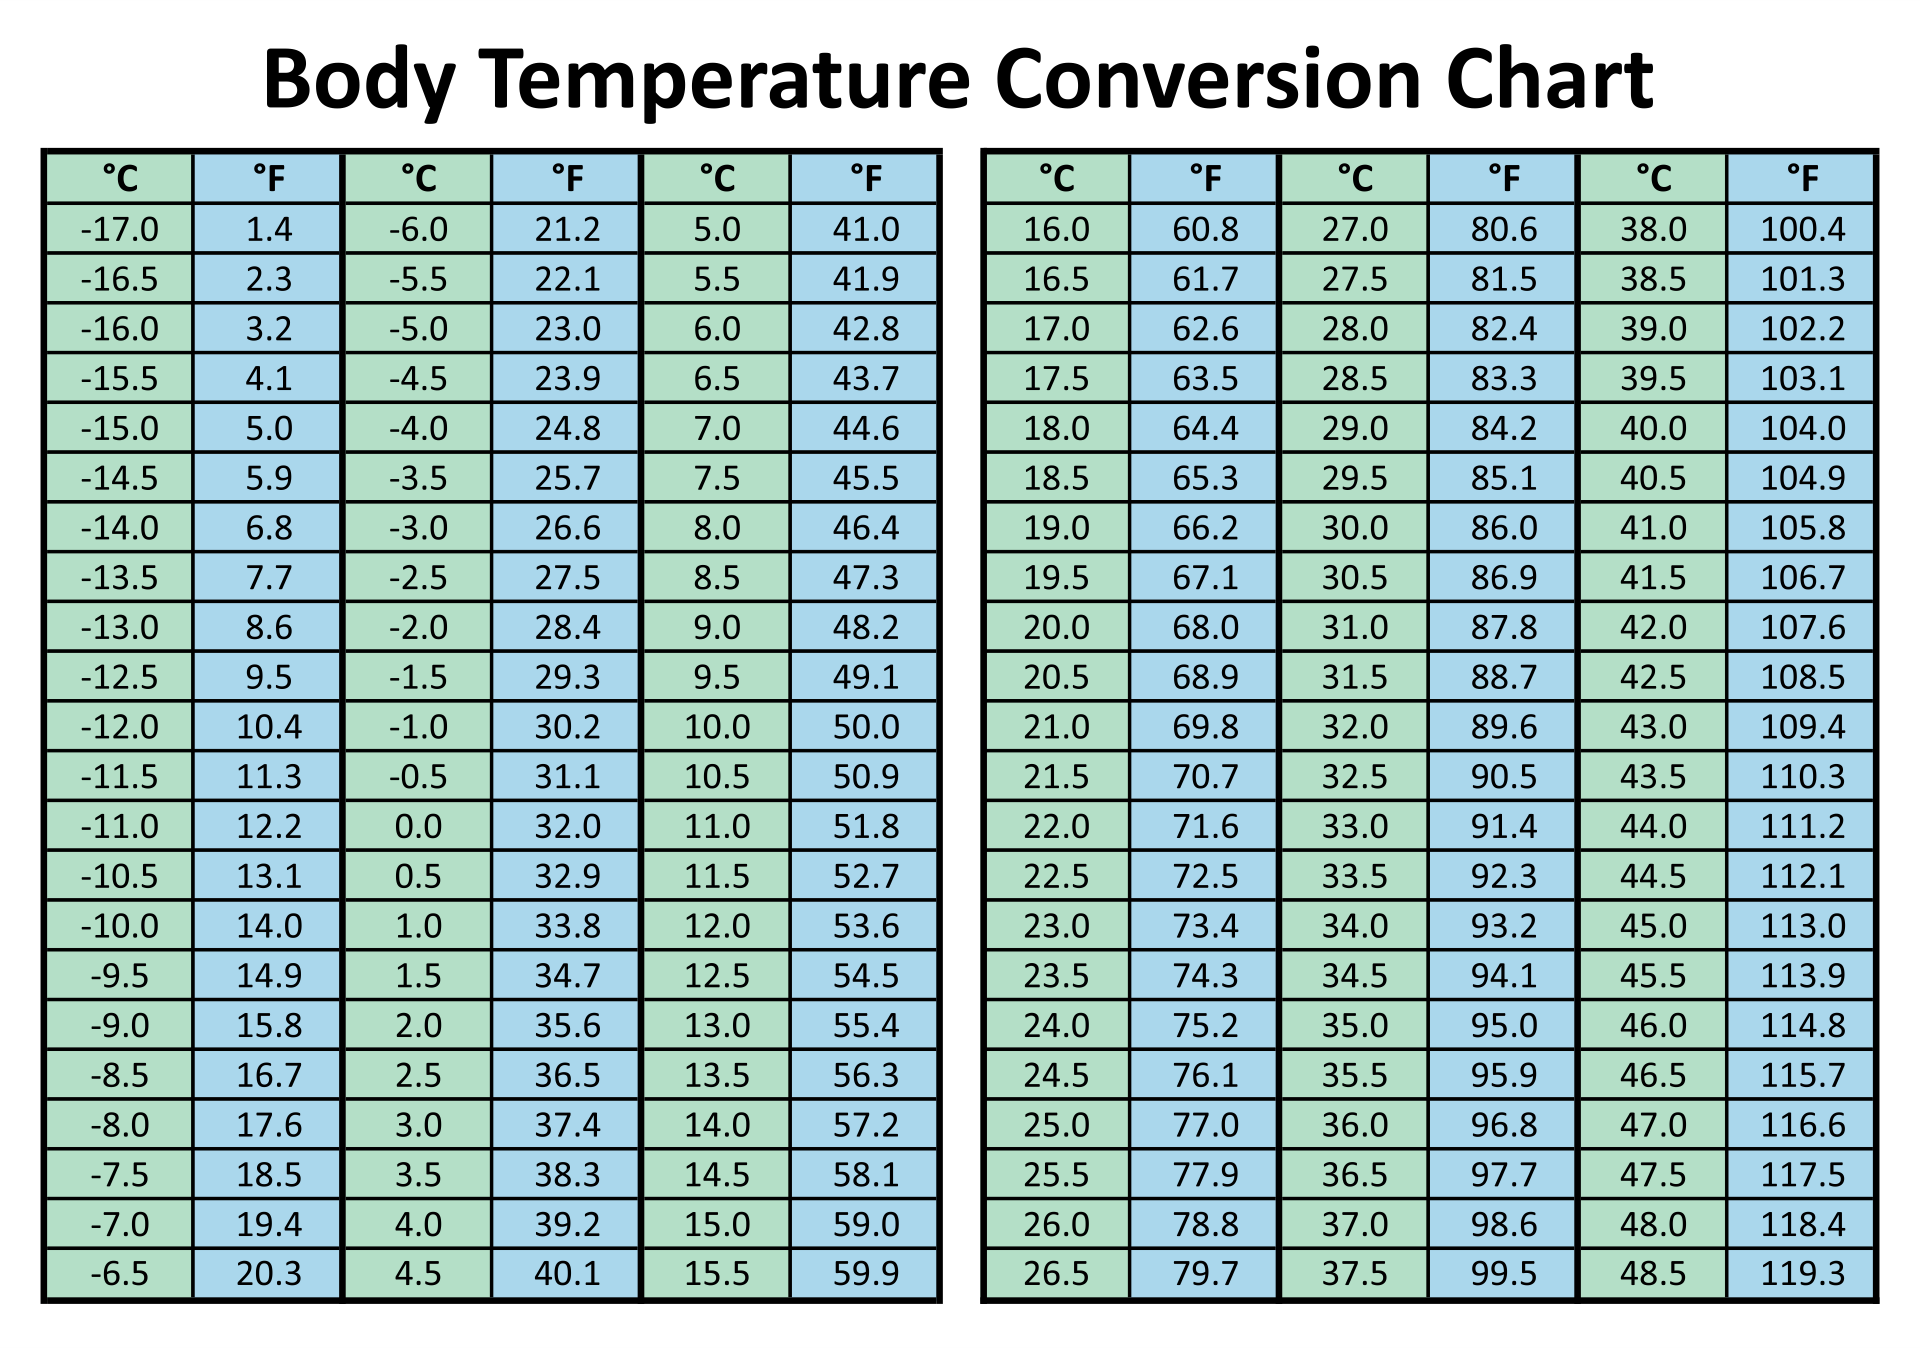 worksheet Fahrenheit To Celsius Conversion Table Duliziyou – Temperature Conversions Worksheet